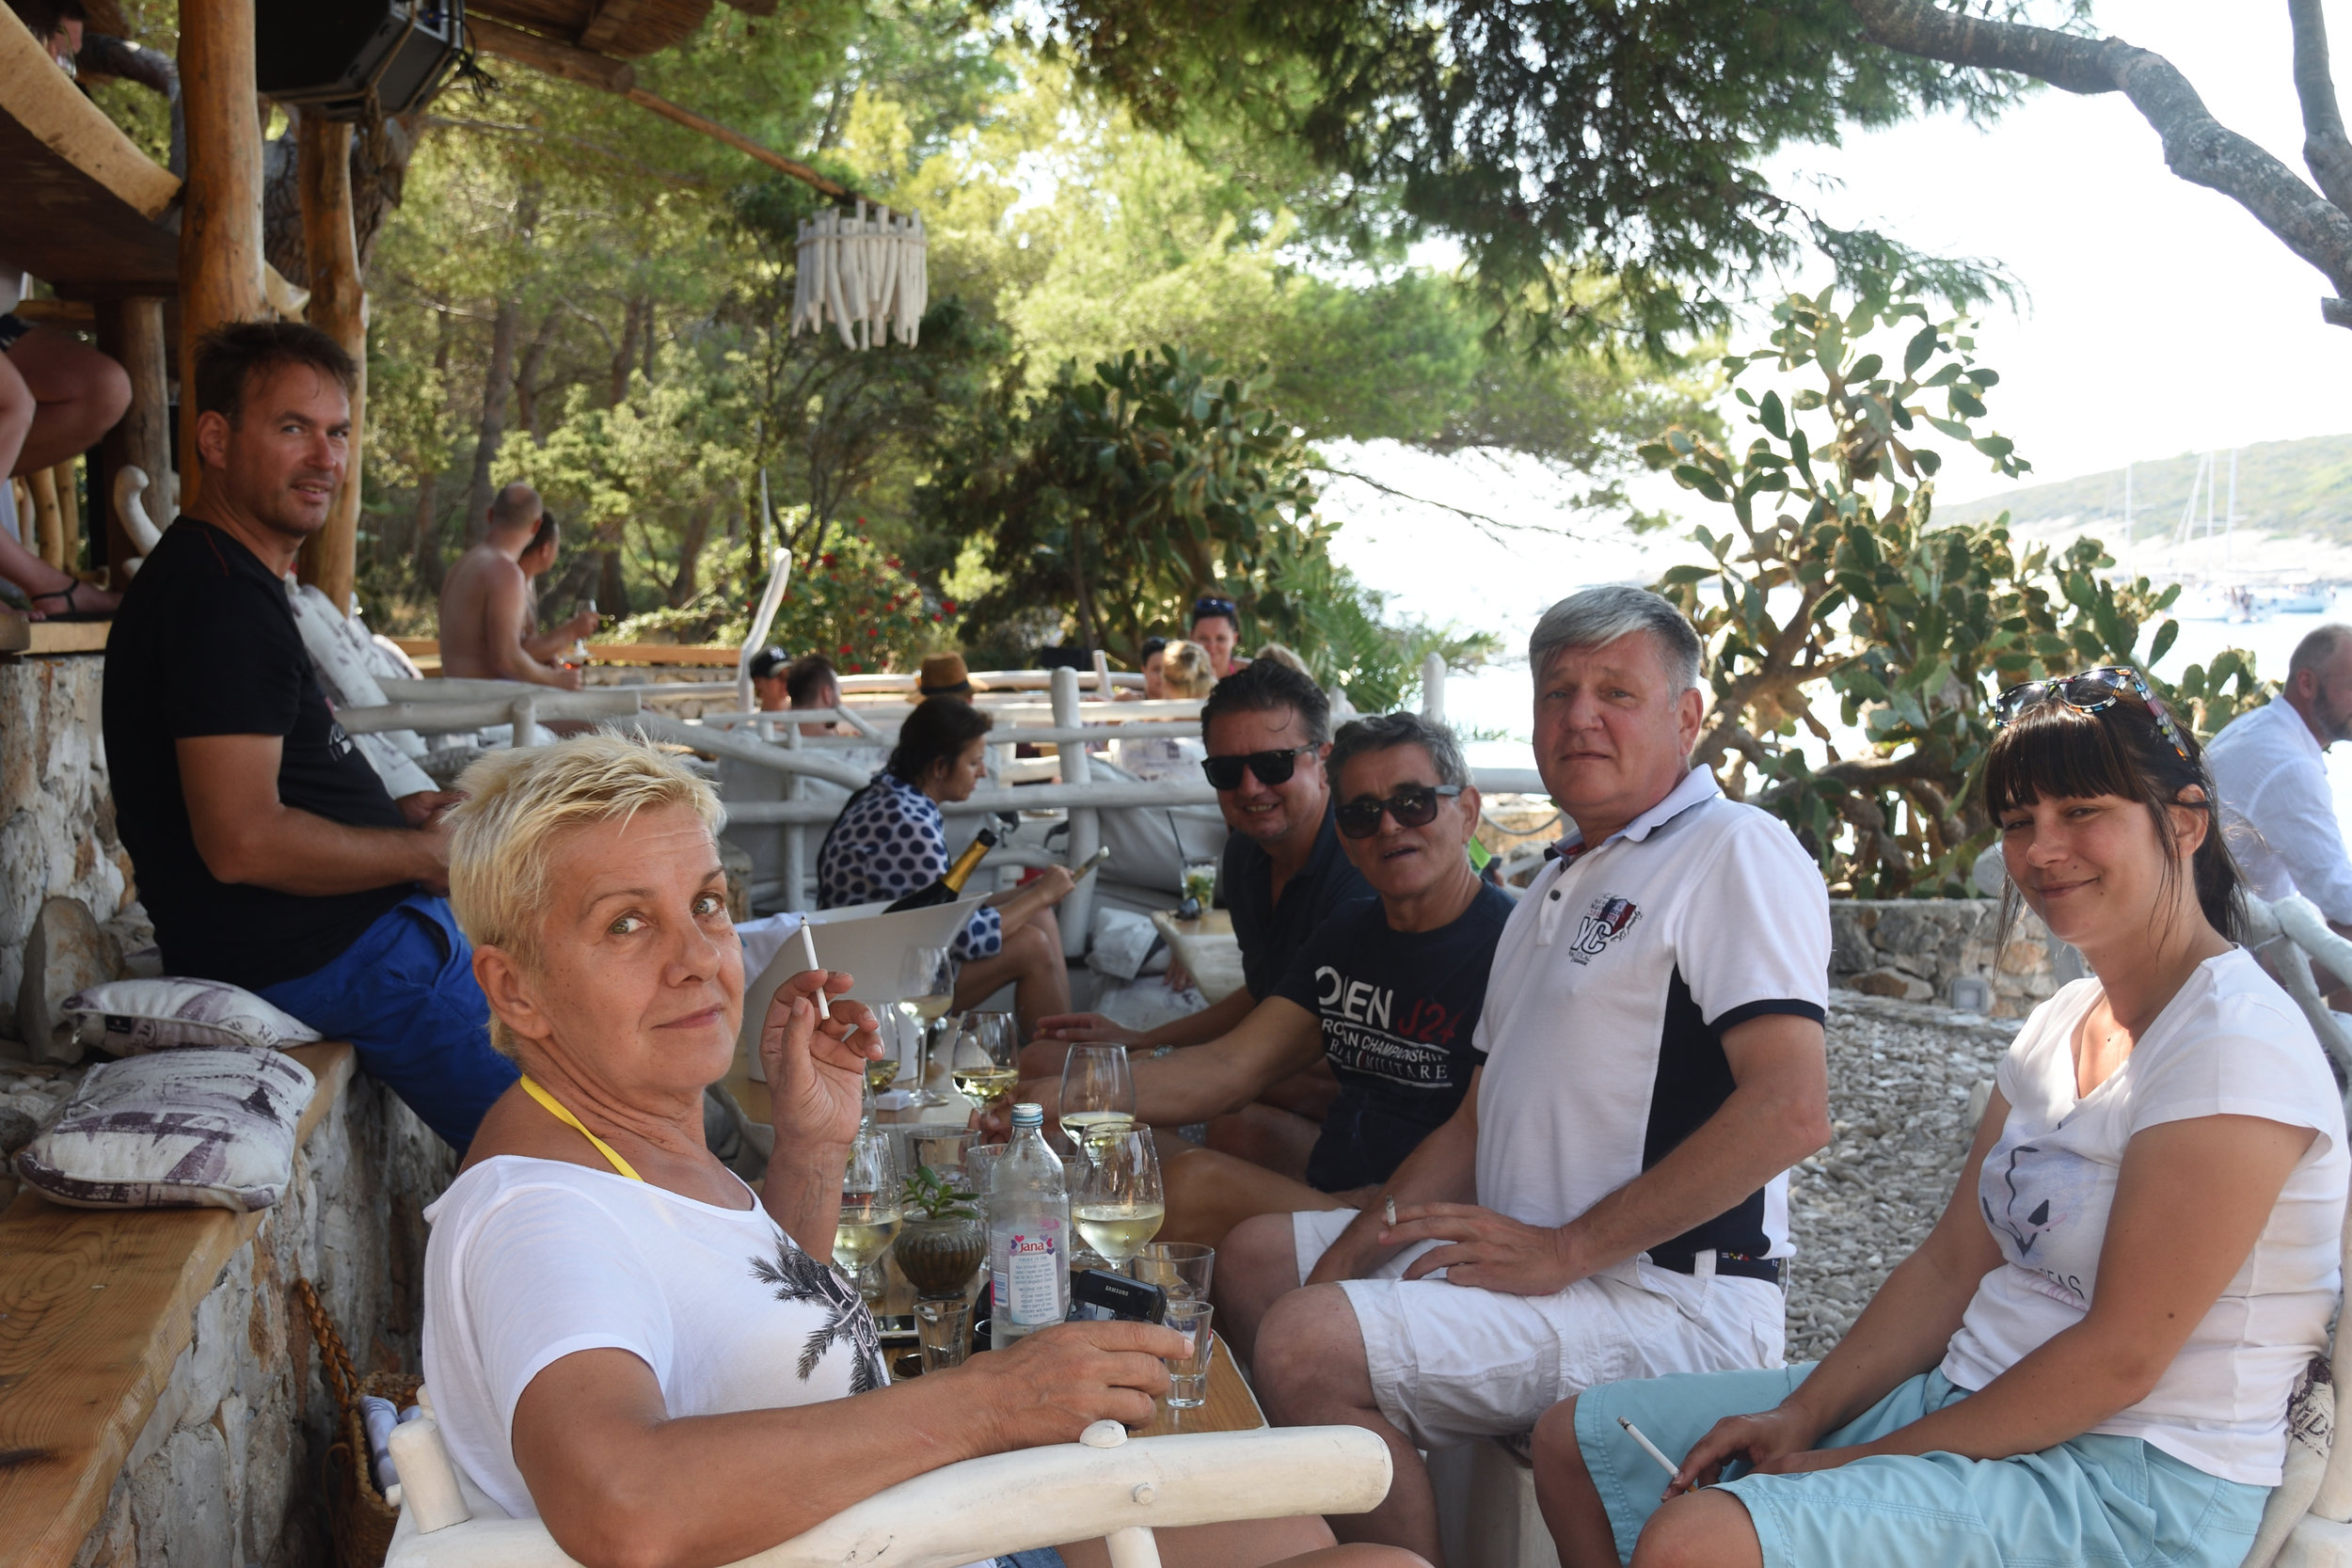 Our new guests; Ditta, Ismet, Borut  & Tina in Hvar, Kroatia, September 2016